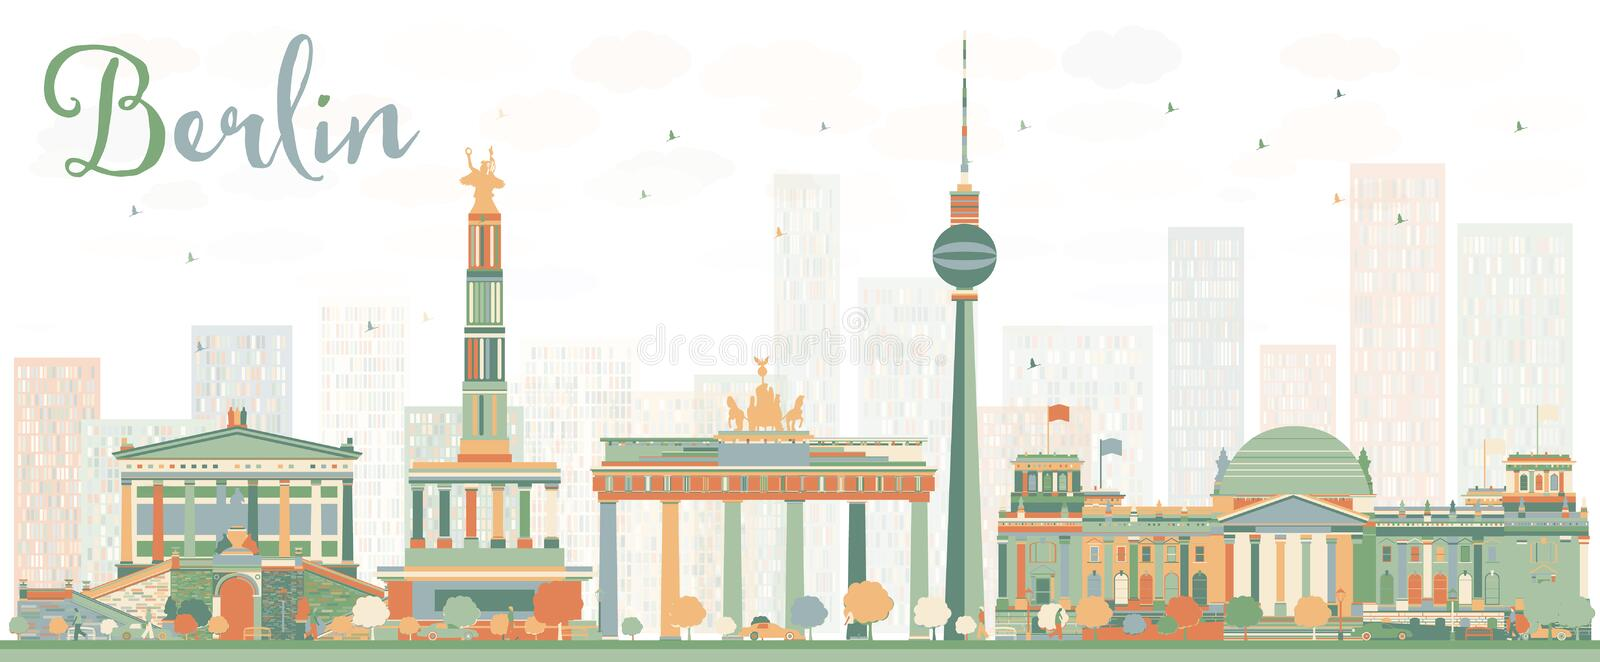 Abstract Berlin Skyline with Color Buildings. Vector Illustration. Business Travel and Tourism Concept with Historic Architecture. Image for Presentation vector illustration